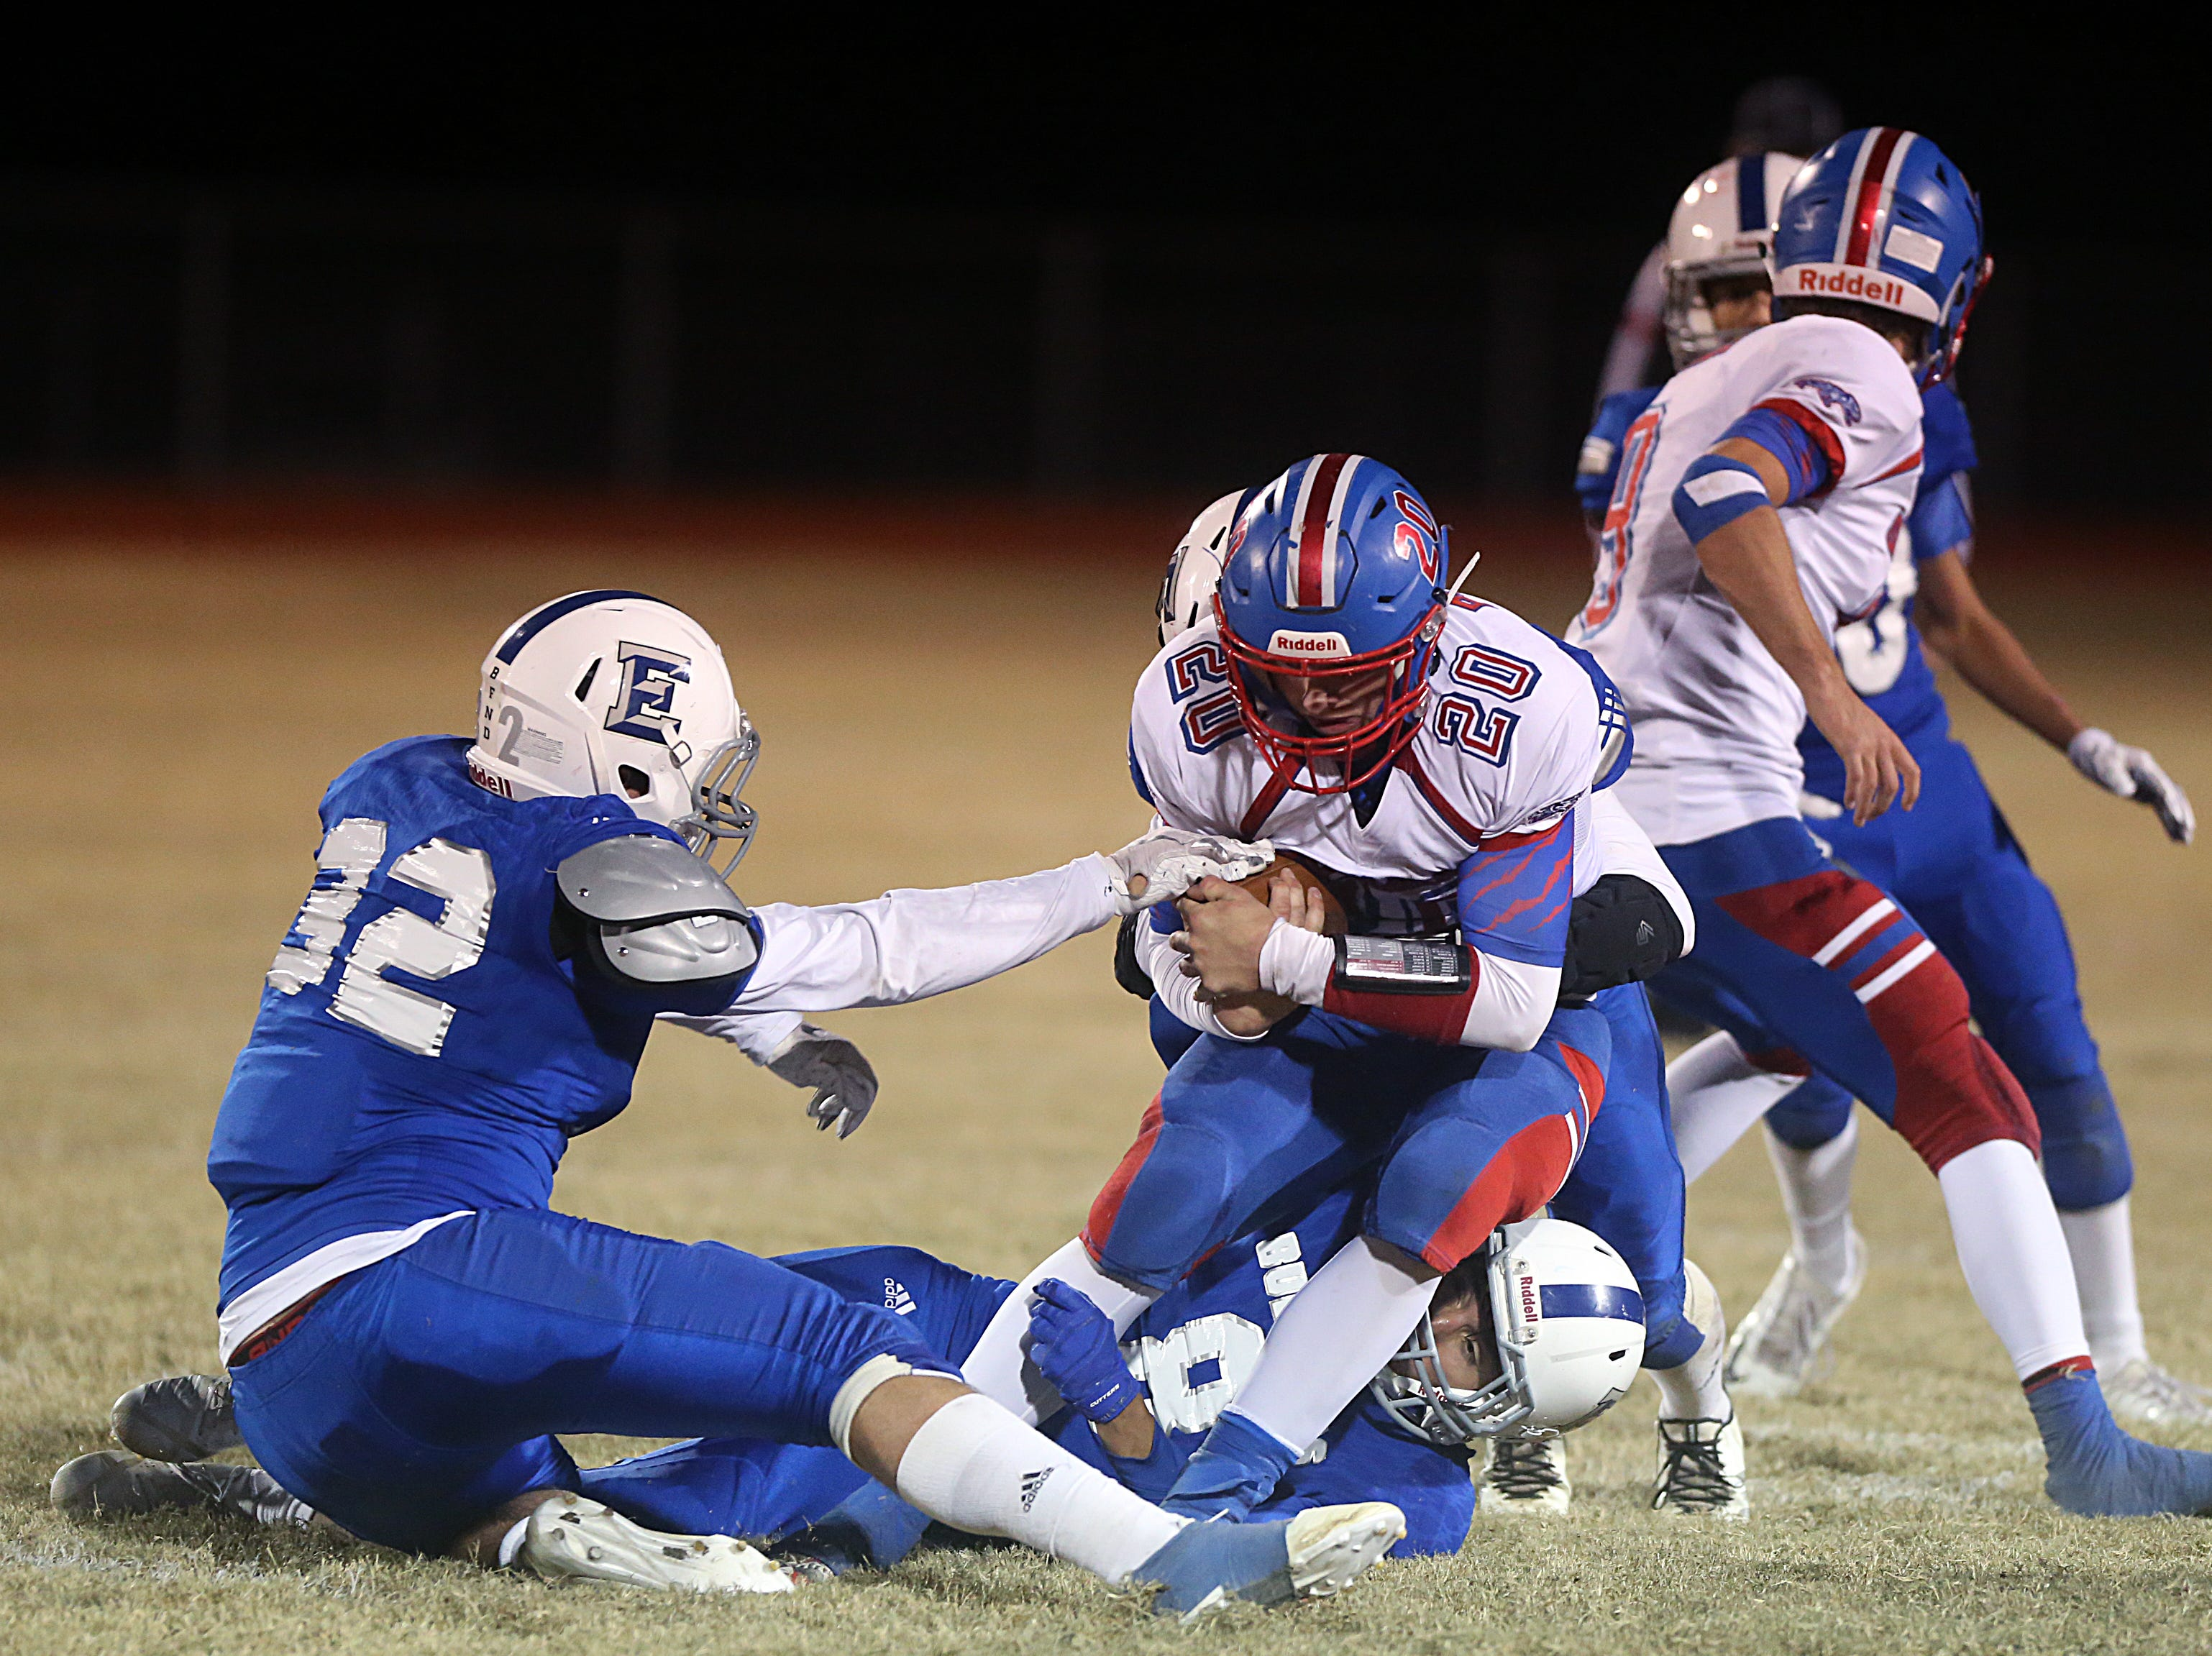 Eden's Erick Pierce (#32) tries to hold on to Gorman's Bryce Petree (#20) Friday, Nov. 16, 2018 during their game in Santa Anna.  Eden lost to Gorman 20 to 68.